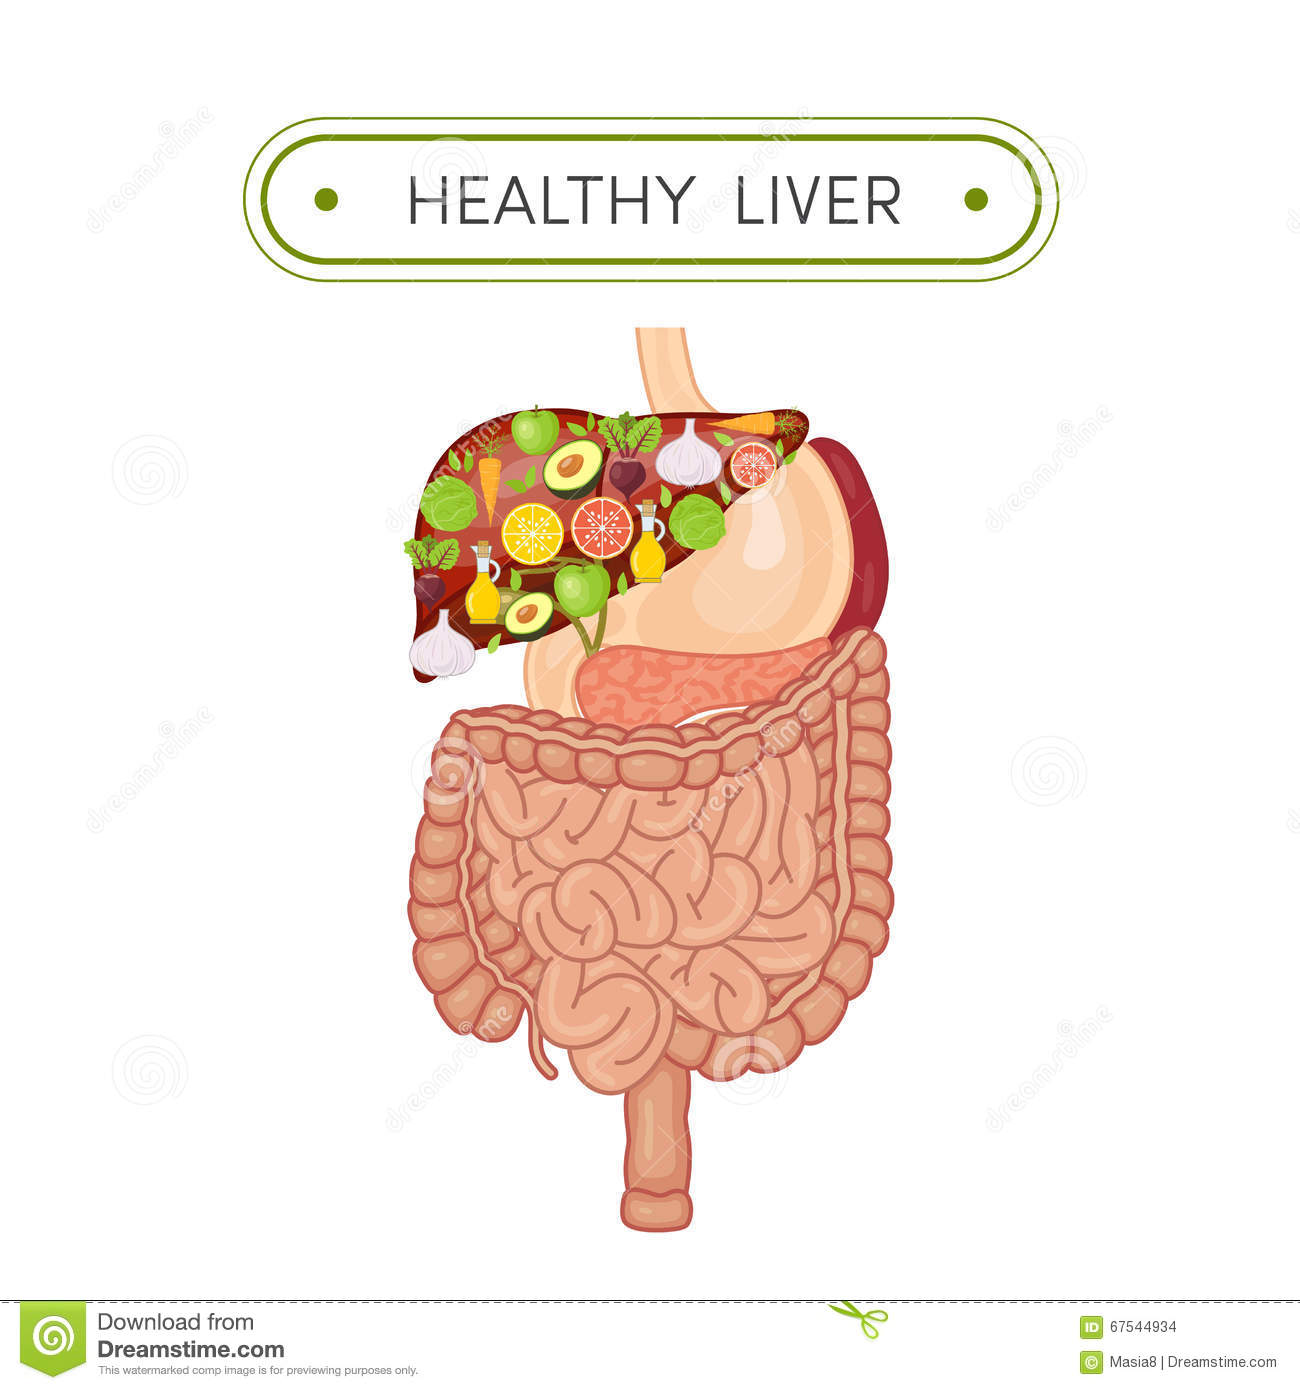 Adrenal Gland Lapel Pin as well Stock Illustrationer Anatomi Av Fisken Image82615676 furthermore Free Anatomy Images in addition Human Digestive System as well Esophagus Clipart. on cartoon esophagus